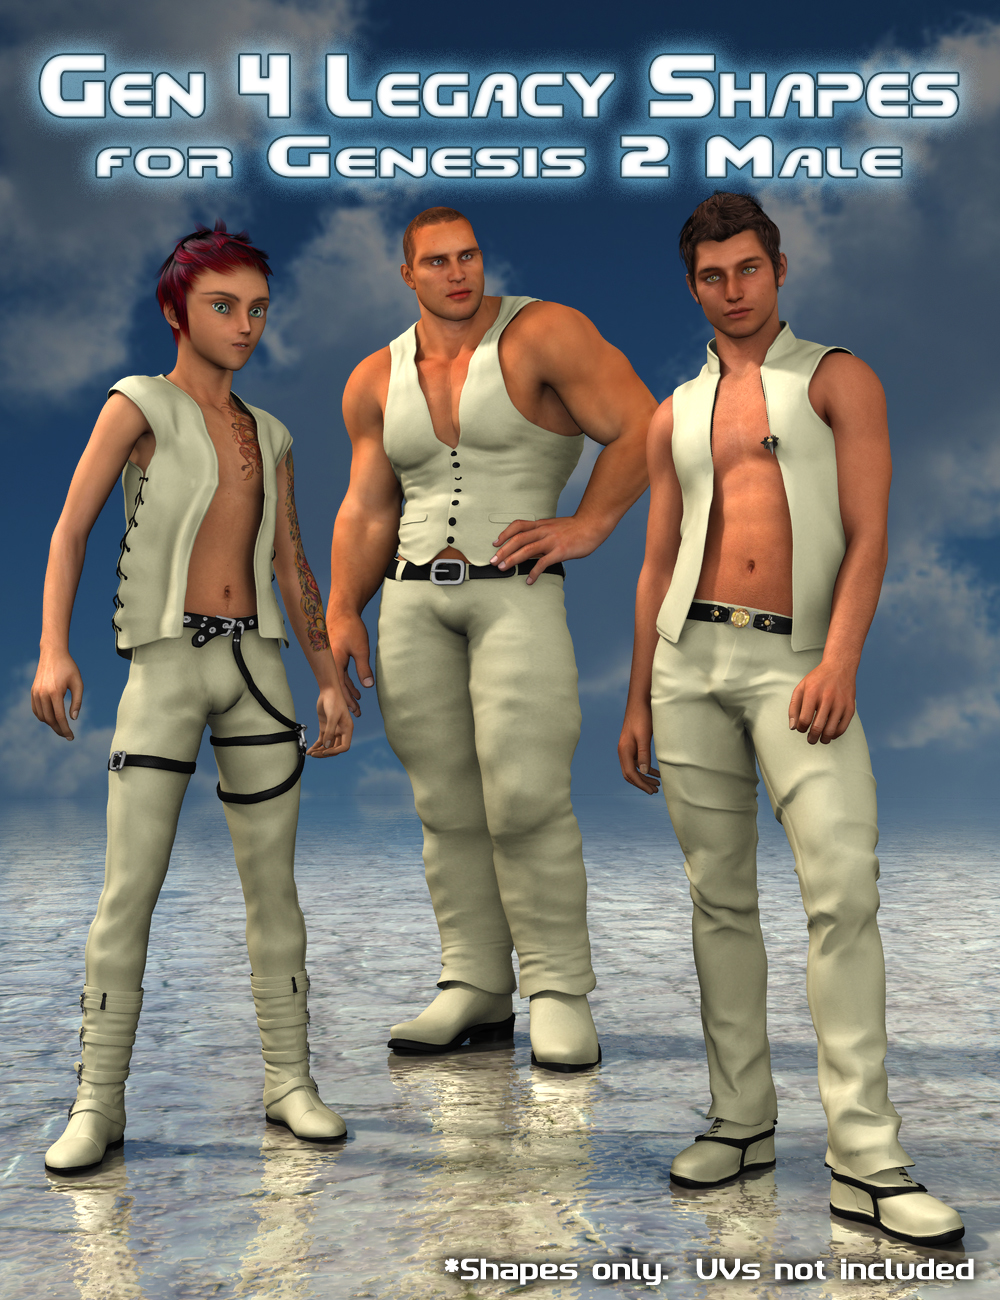 Generation 4 Legacy Shapes for Genesis 2 Male(s) by: SloshWerks, 3D Models by Daz 3D